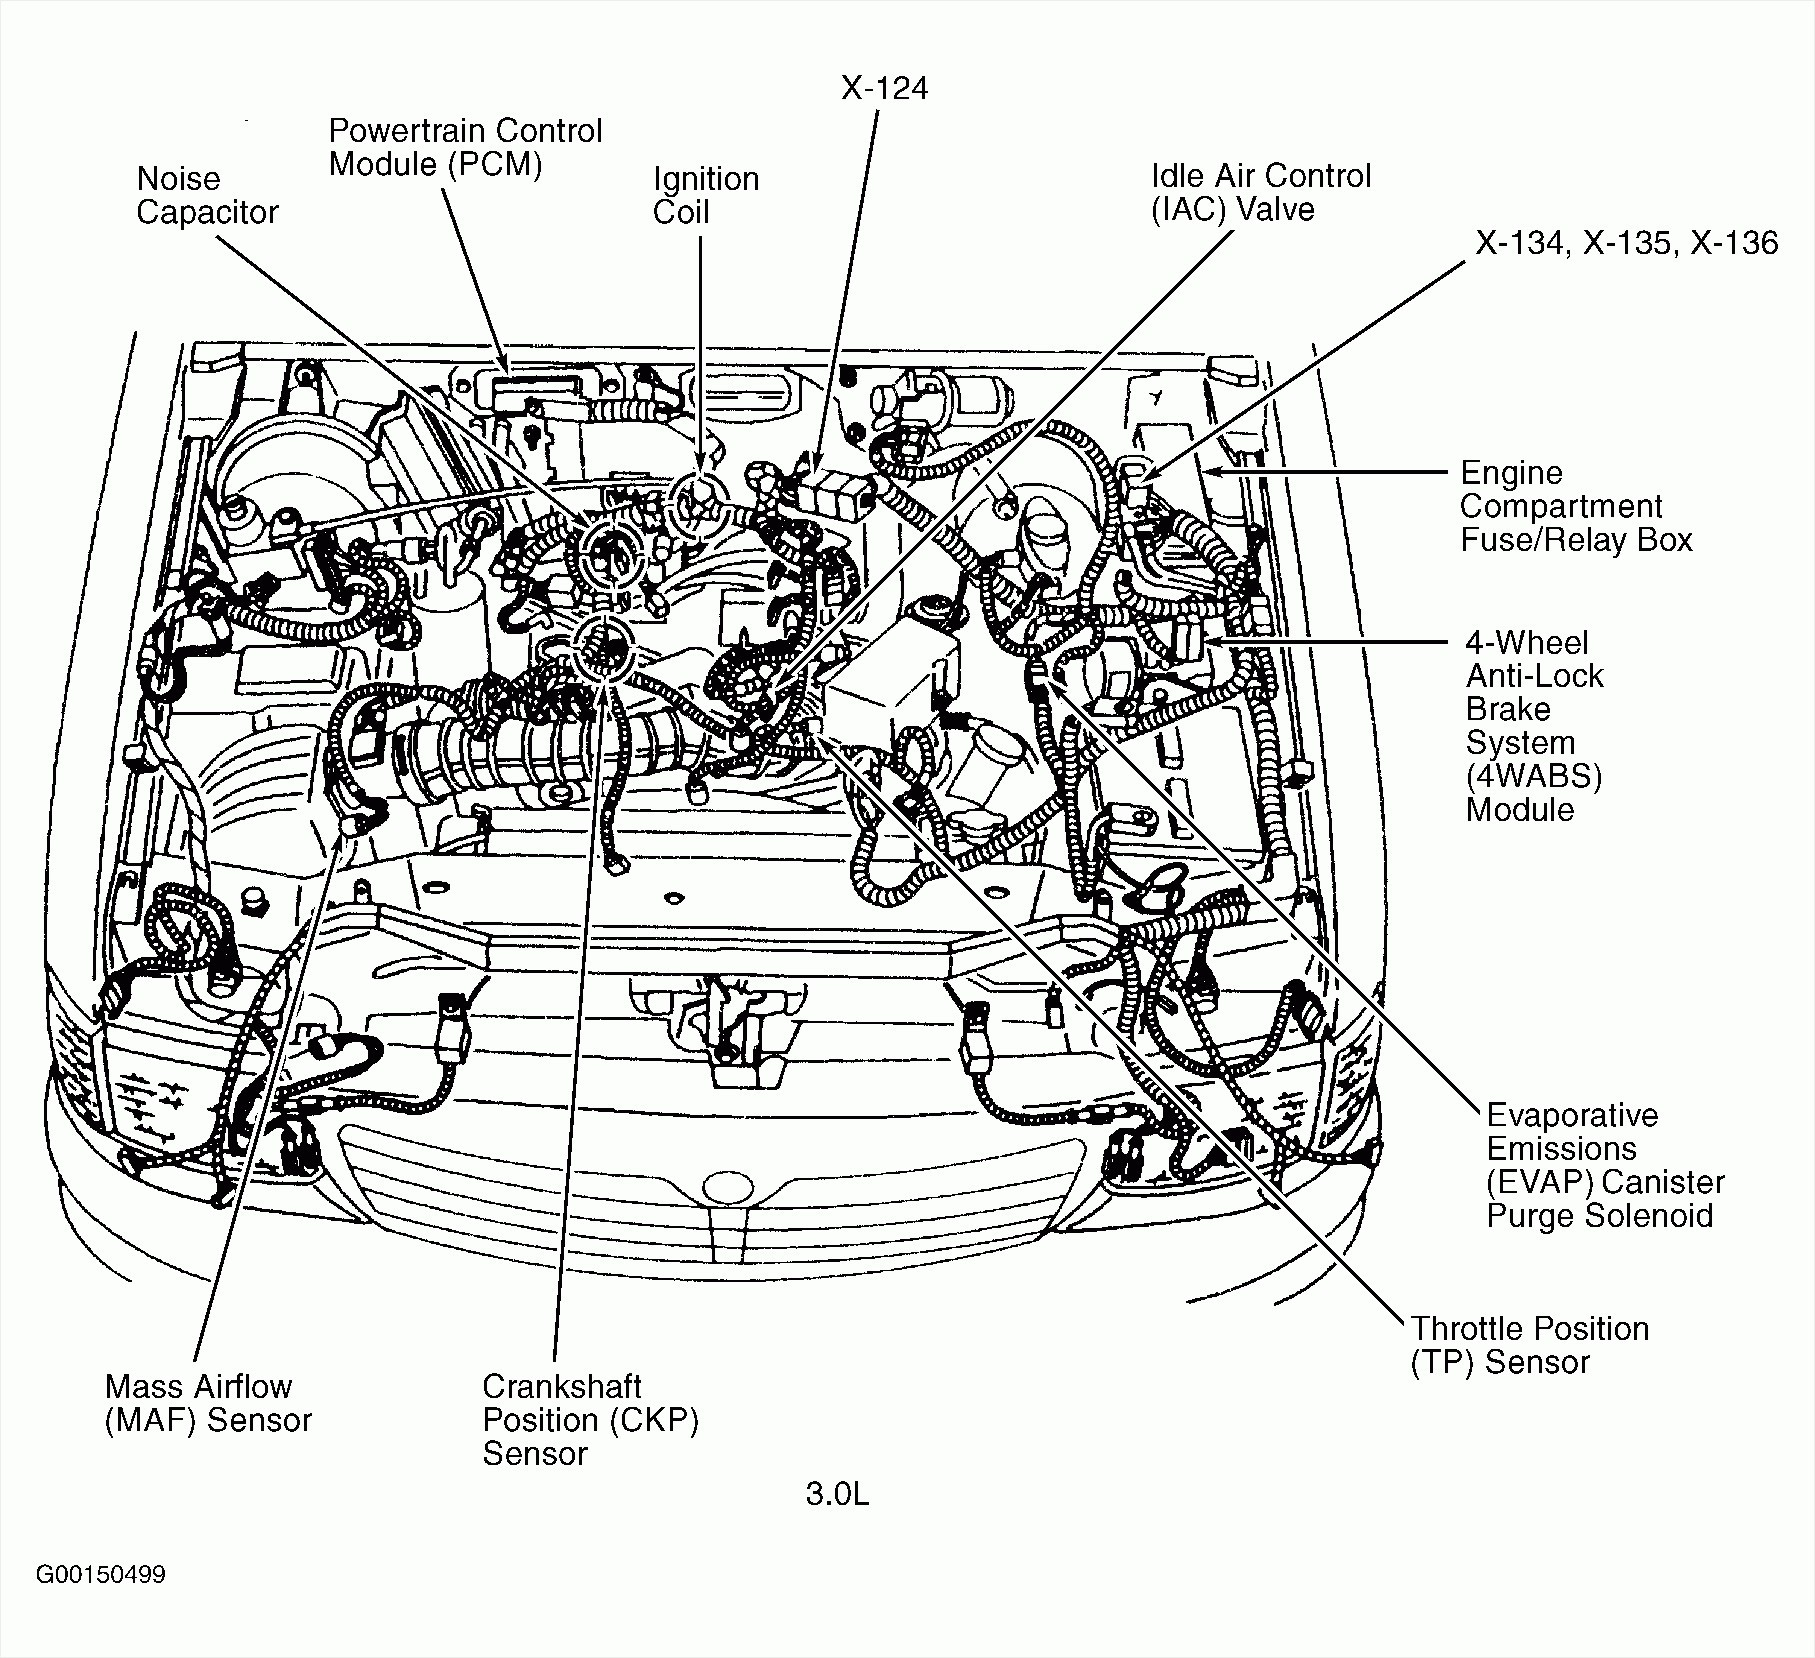 2004 Grand Caravan Engine Diagram Worksheet And Wiring Dodge Fuse 3 1 Liter V6 Mazda Rh Detoxicrecenze Com 2005